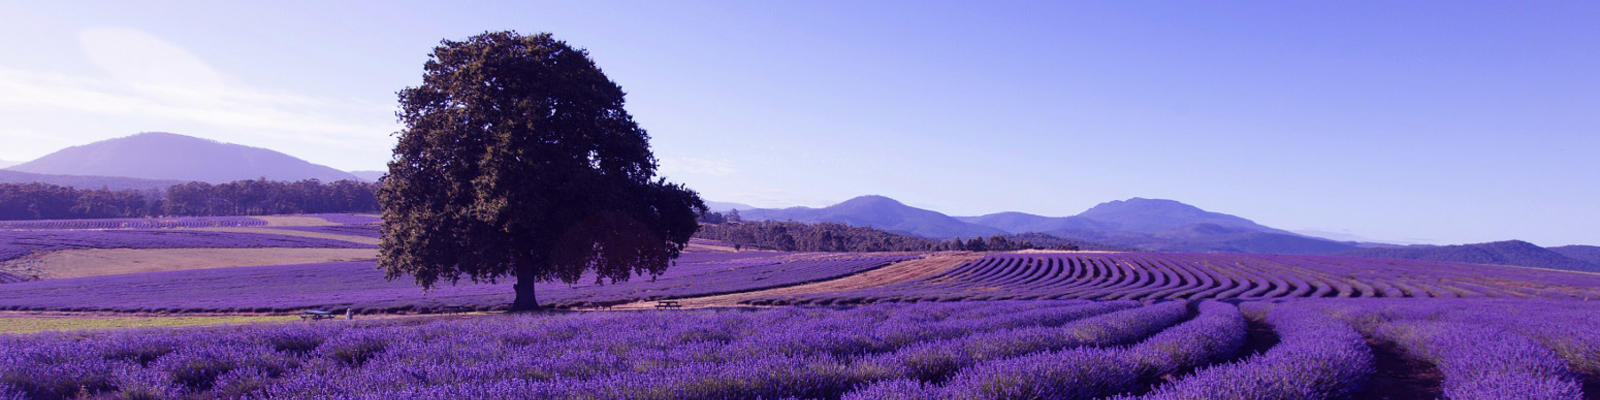 A view of the lavender fields in Tasmania with the flowers in full bloom